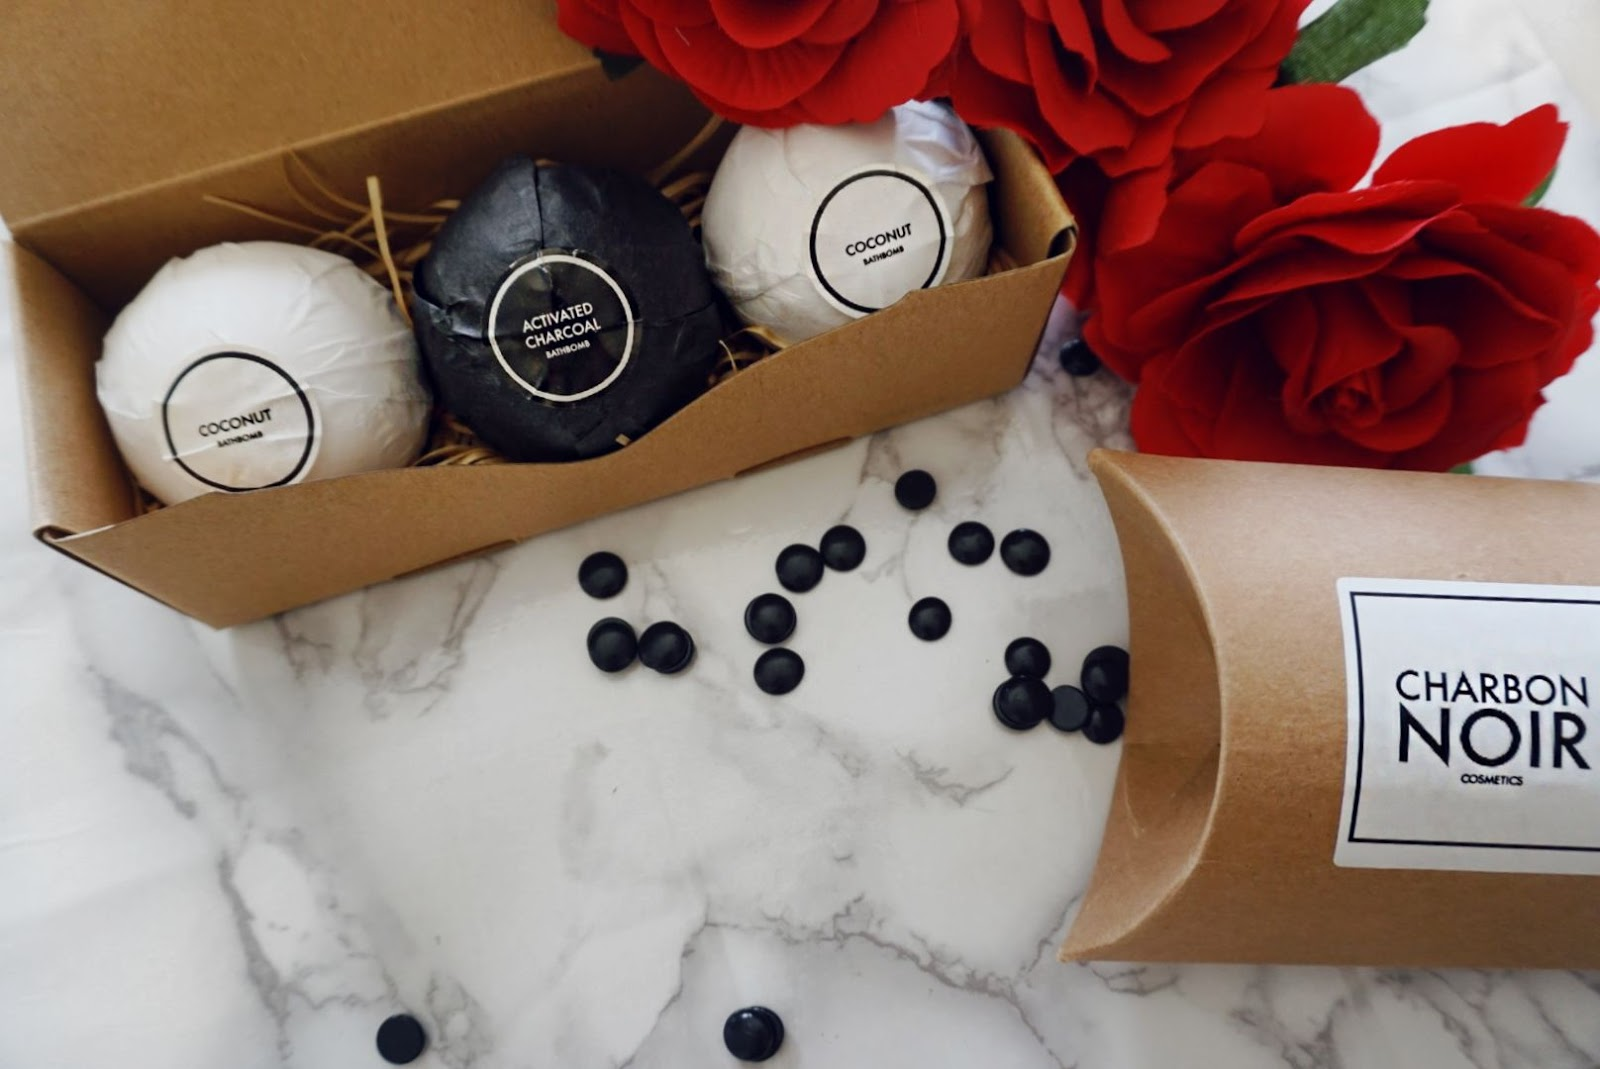 INDULGE AND RELAX WITH THE CHARCOAL ACTIVATED BATH BOMBS BY CHARBON NOIR COSMETICS